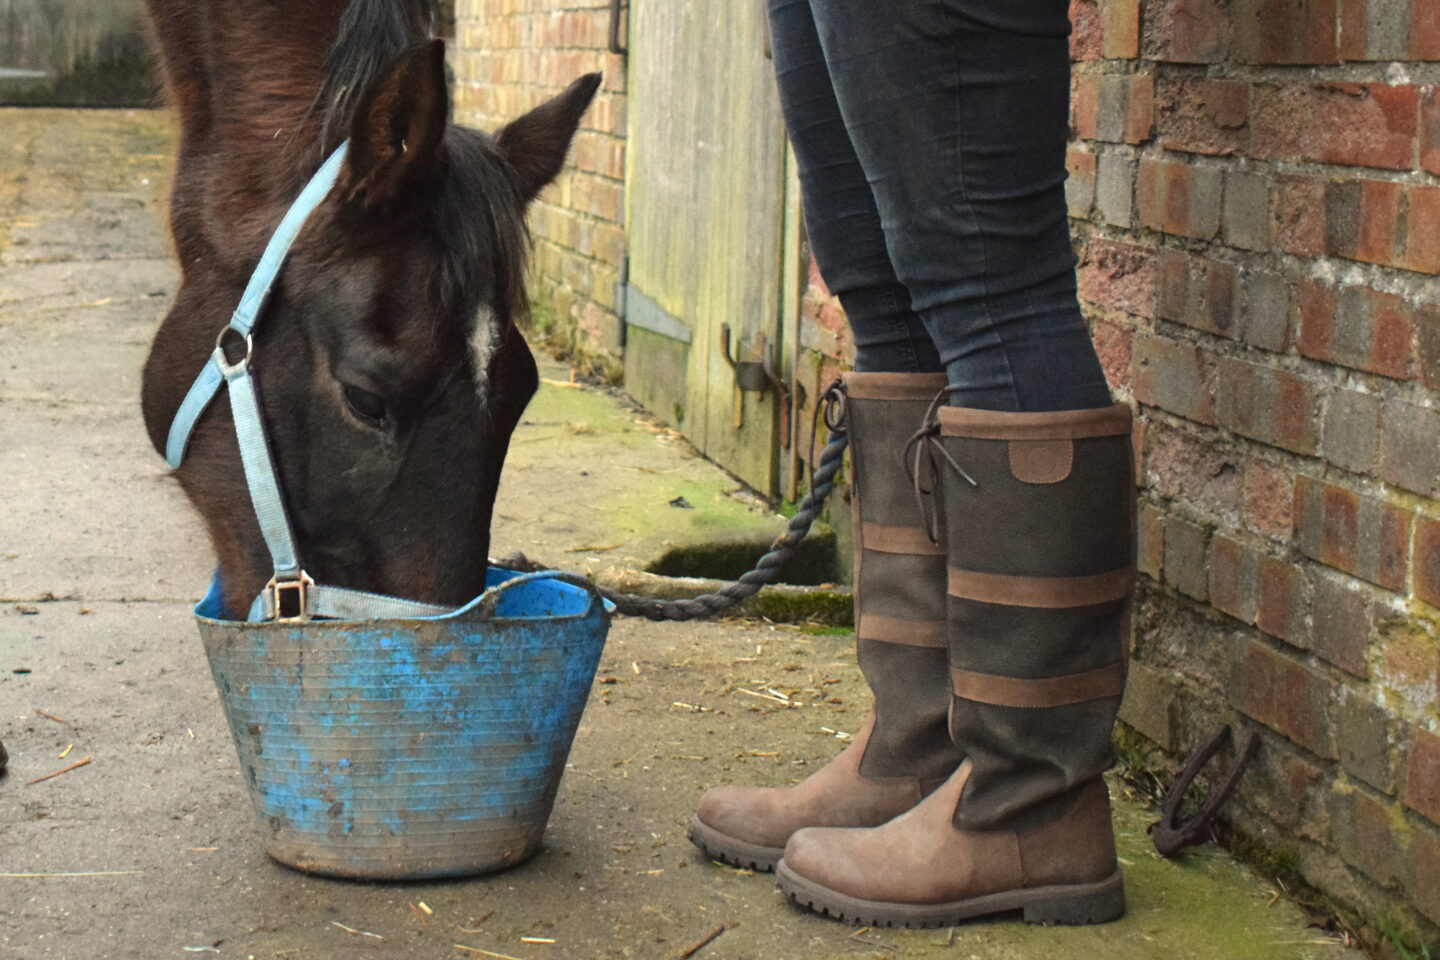 woman's Rydale boots standing next to a horse eating from a bucket